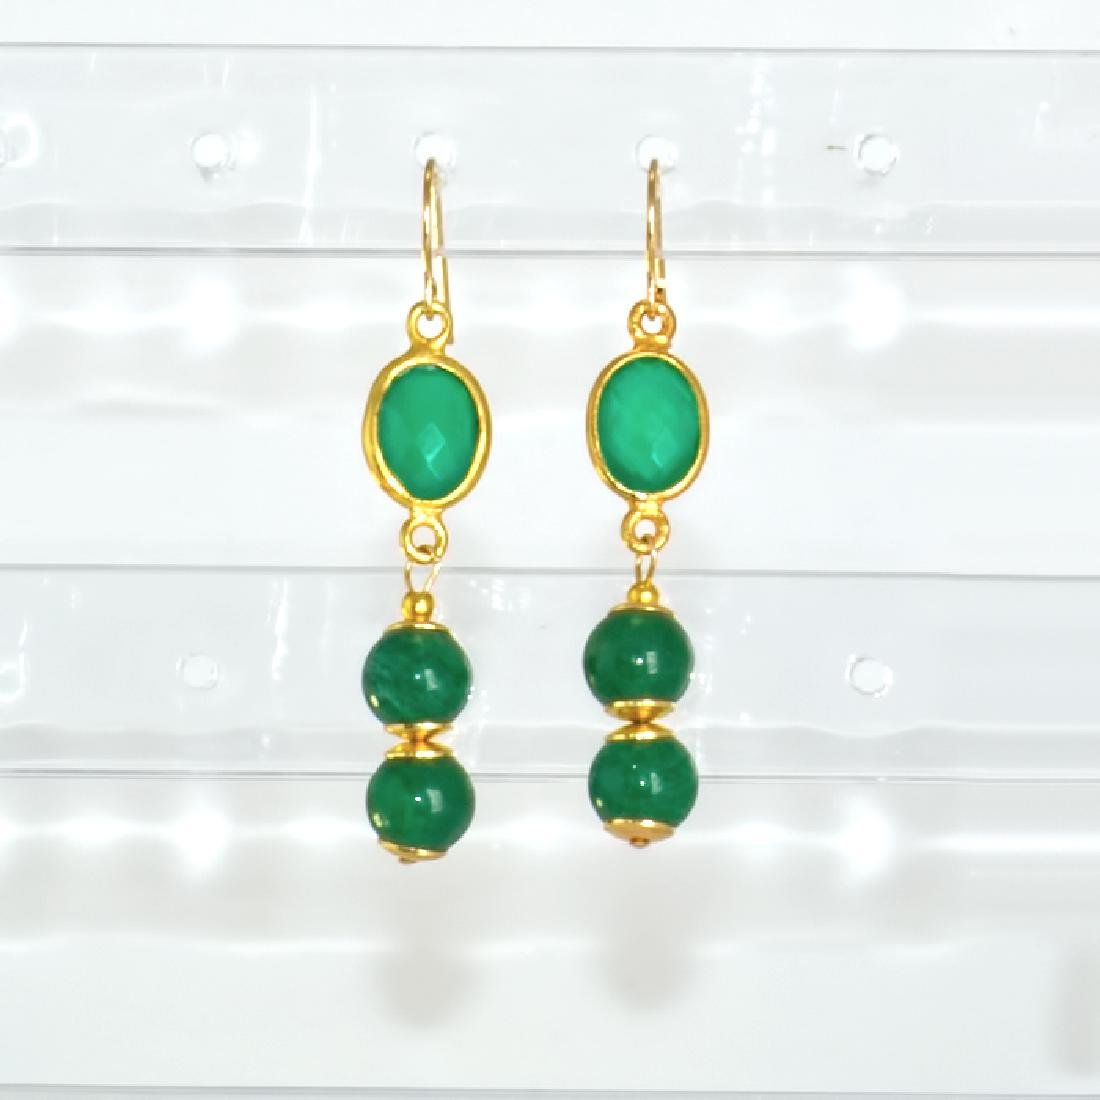 14K Art Deco Style Earrings with Jadeite Jade and - 2